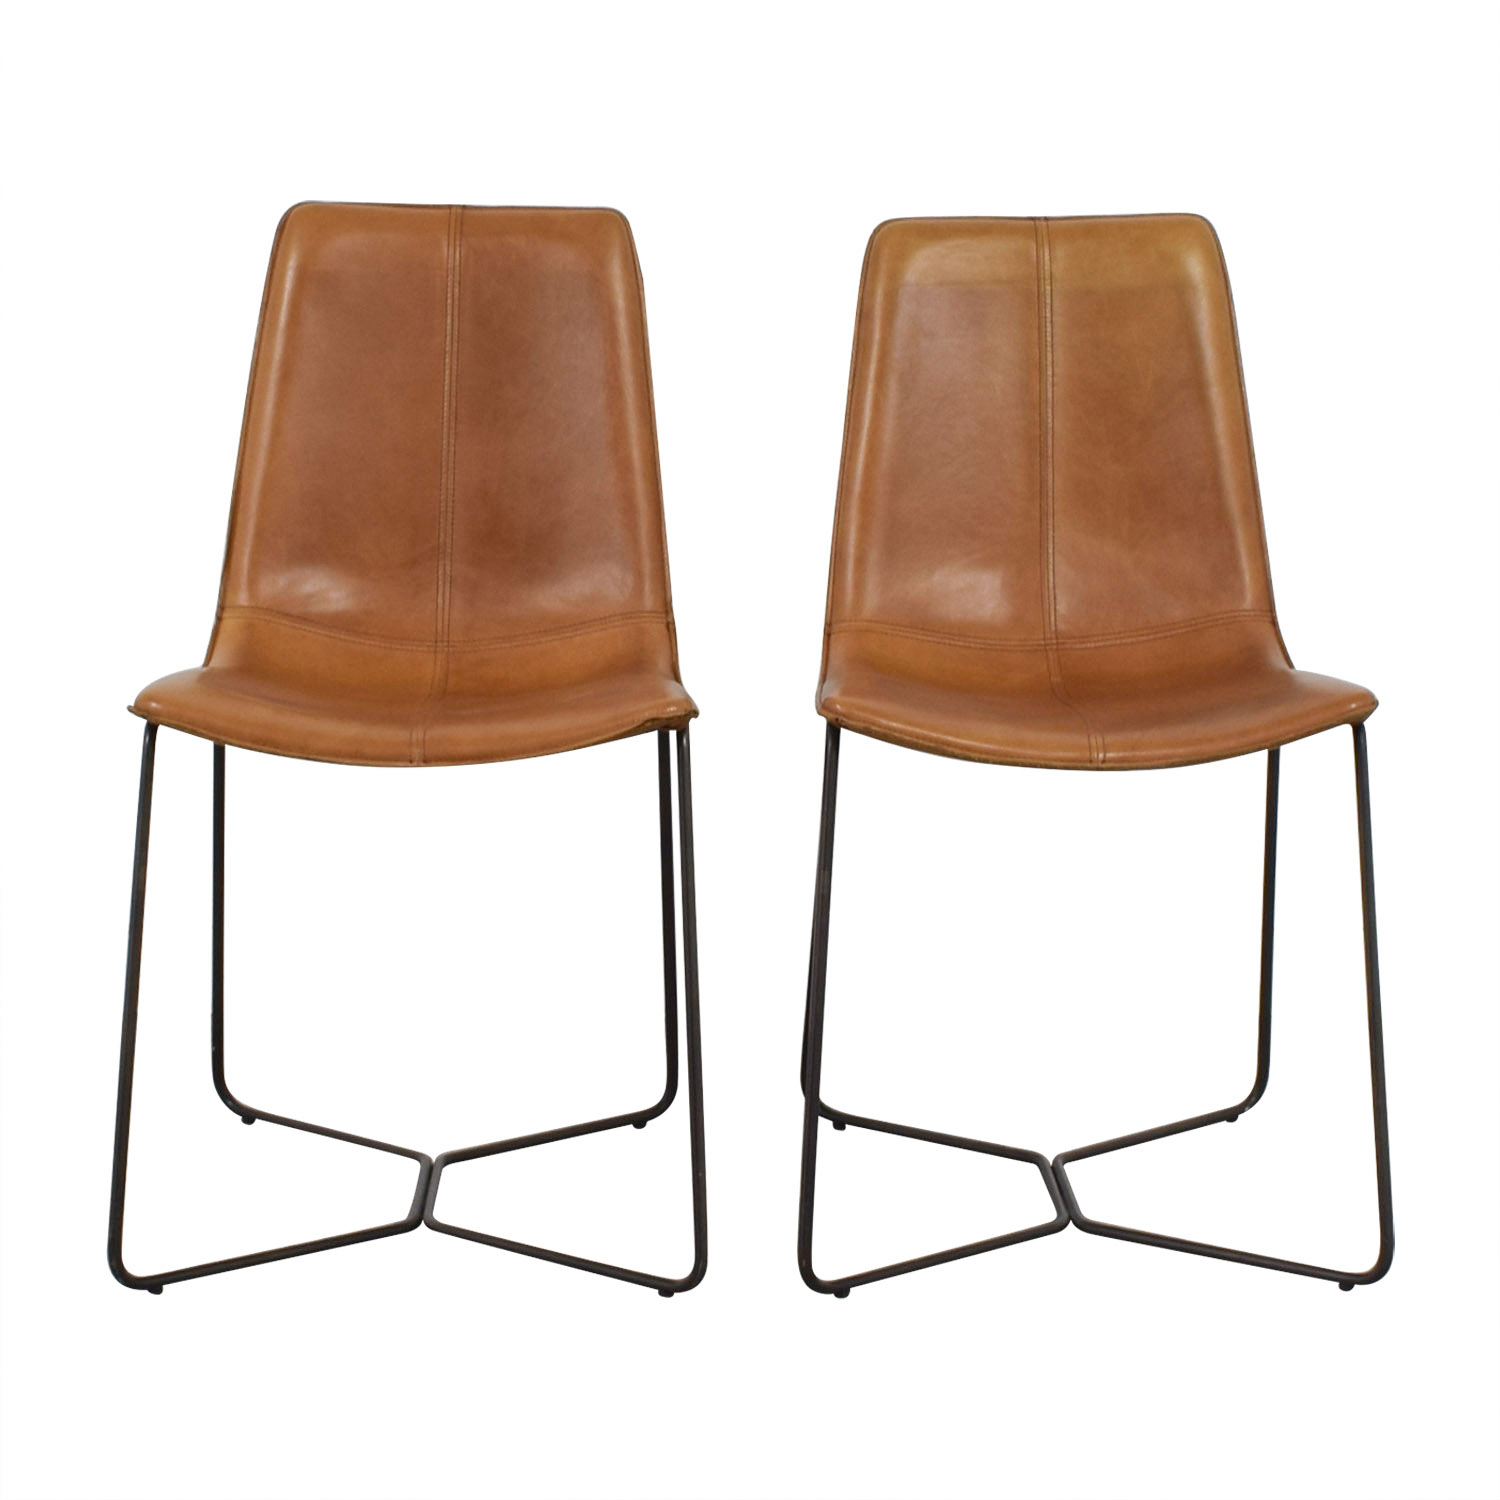 West Elm West Elm Leather Slope Dining Chairs nyc